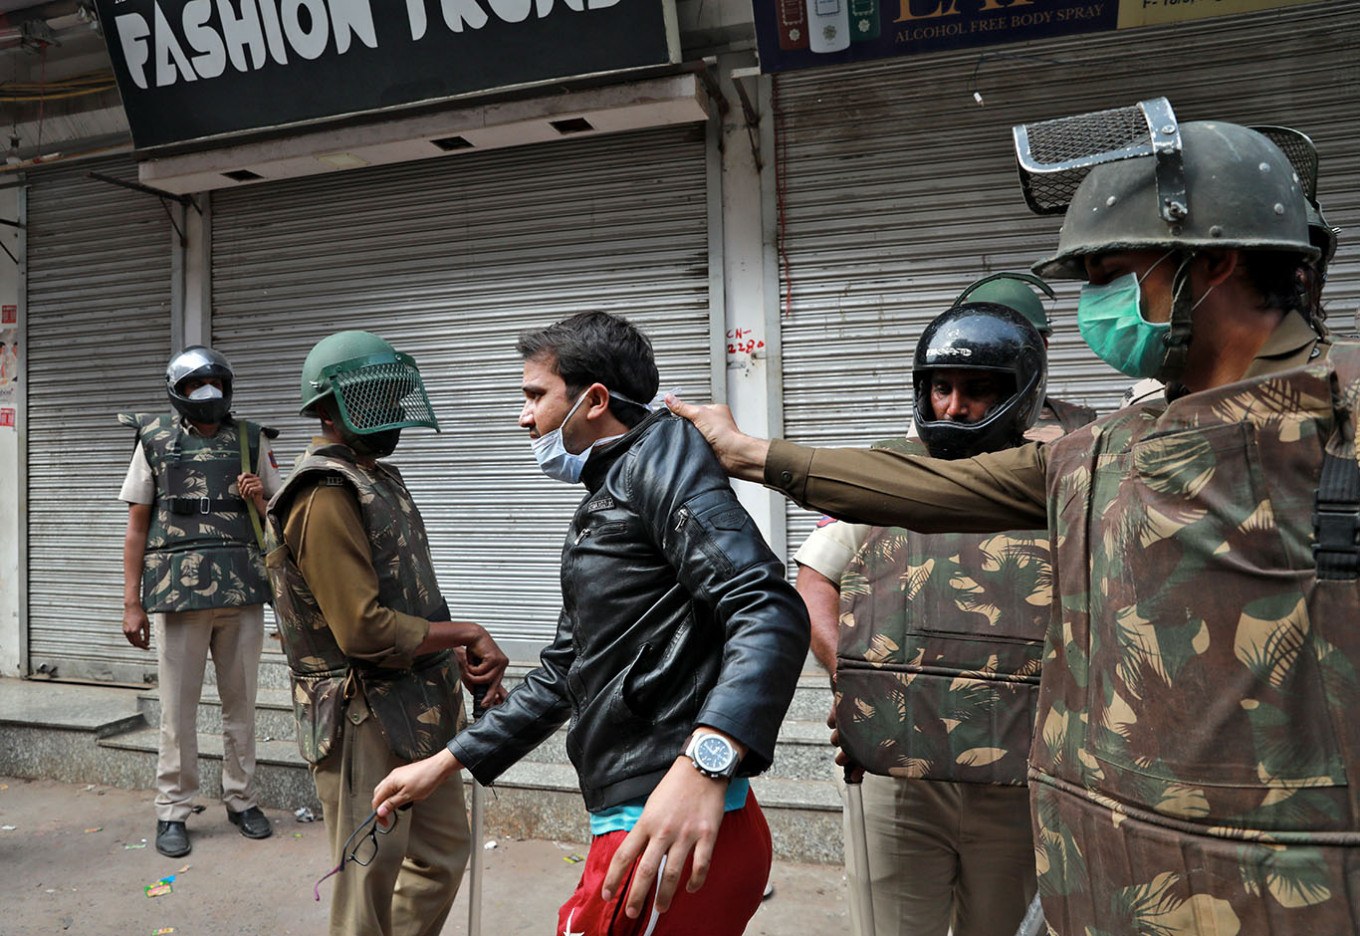 India to impose nationwide lockdown from midnight, Modi says